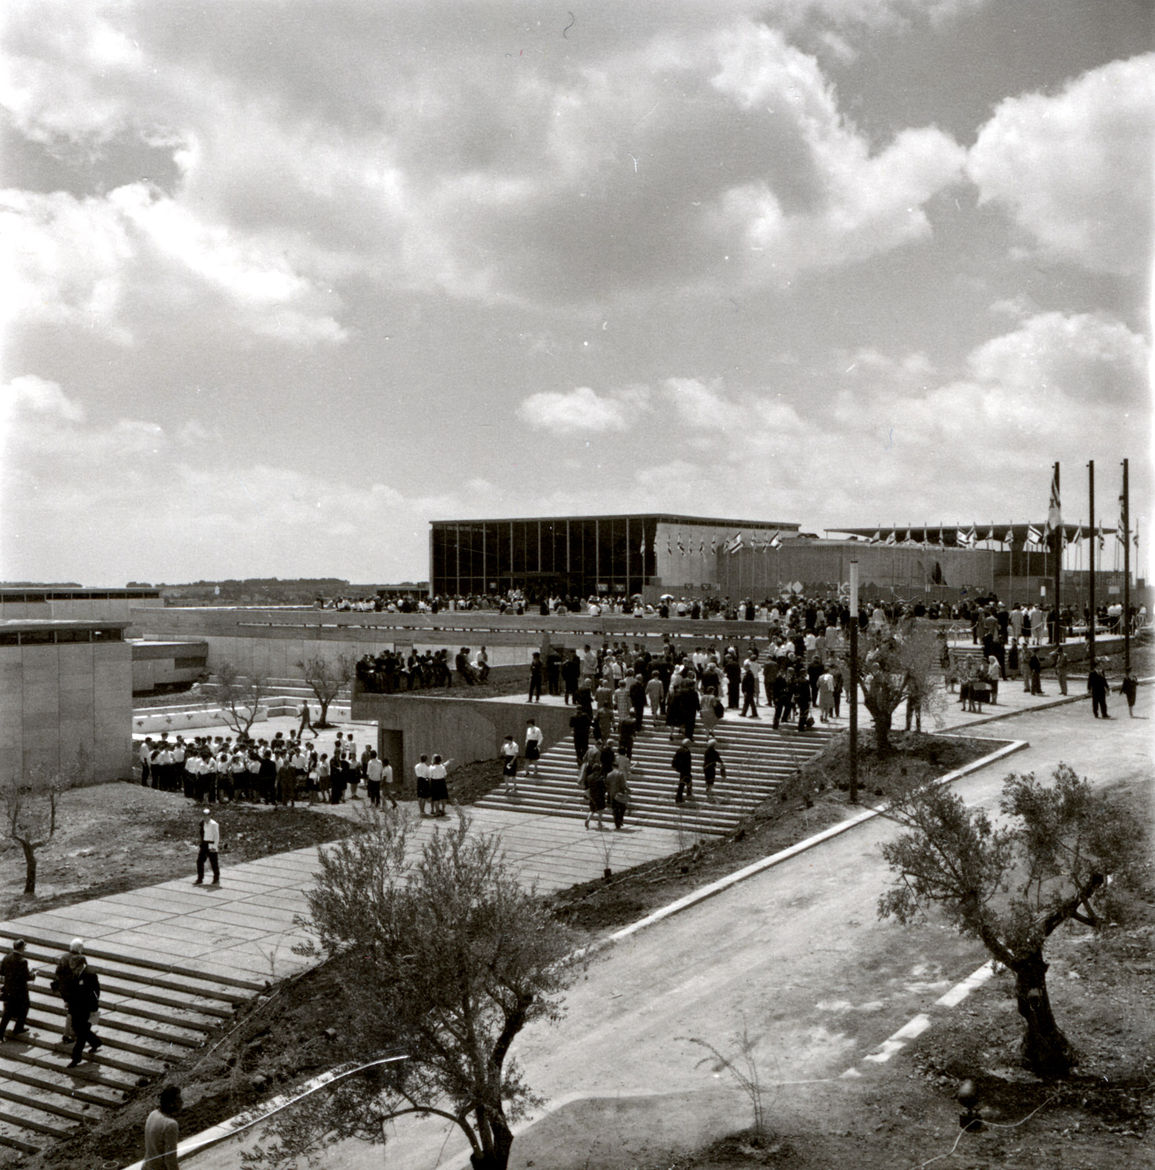 Israel Museum designed by Al Mansfeld in 1965